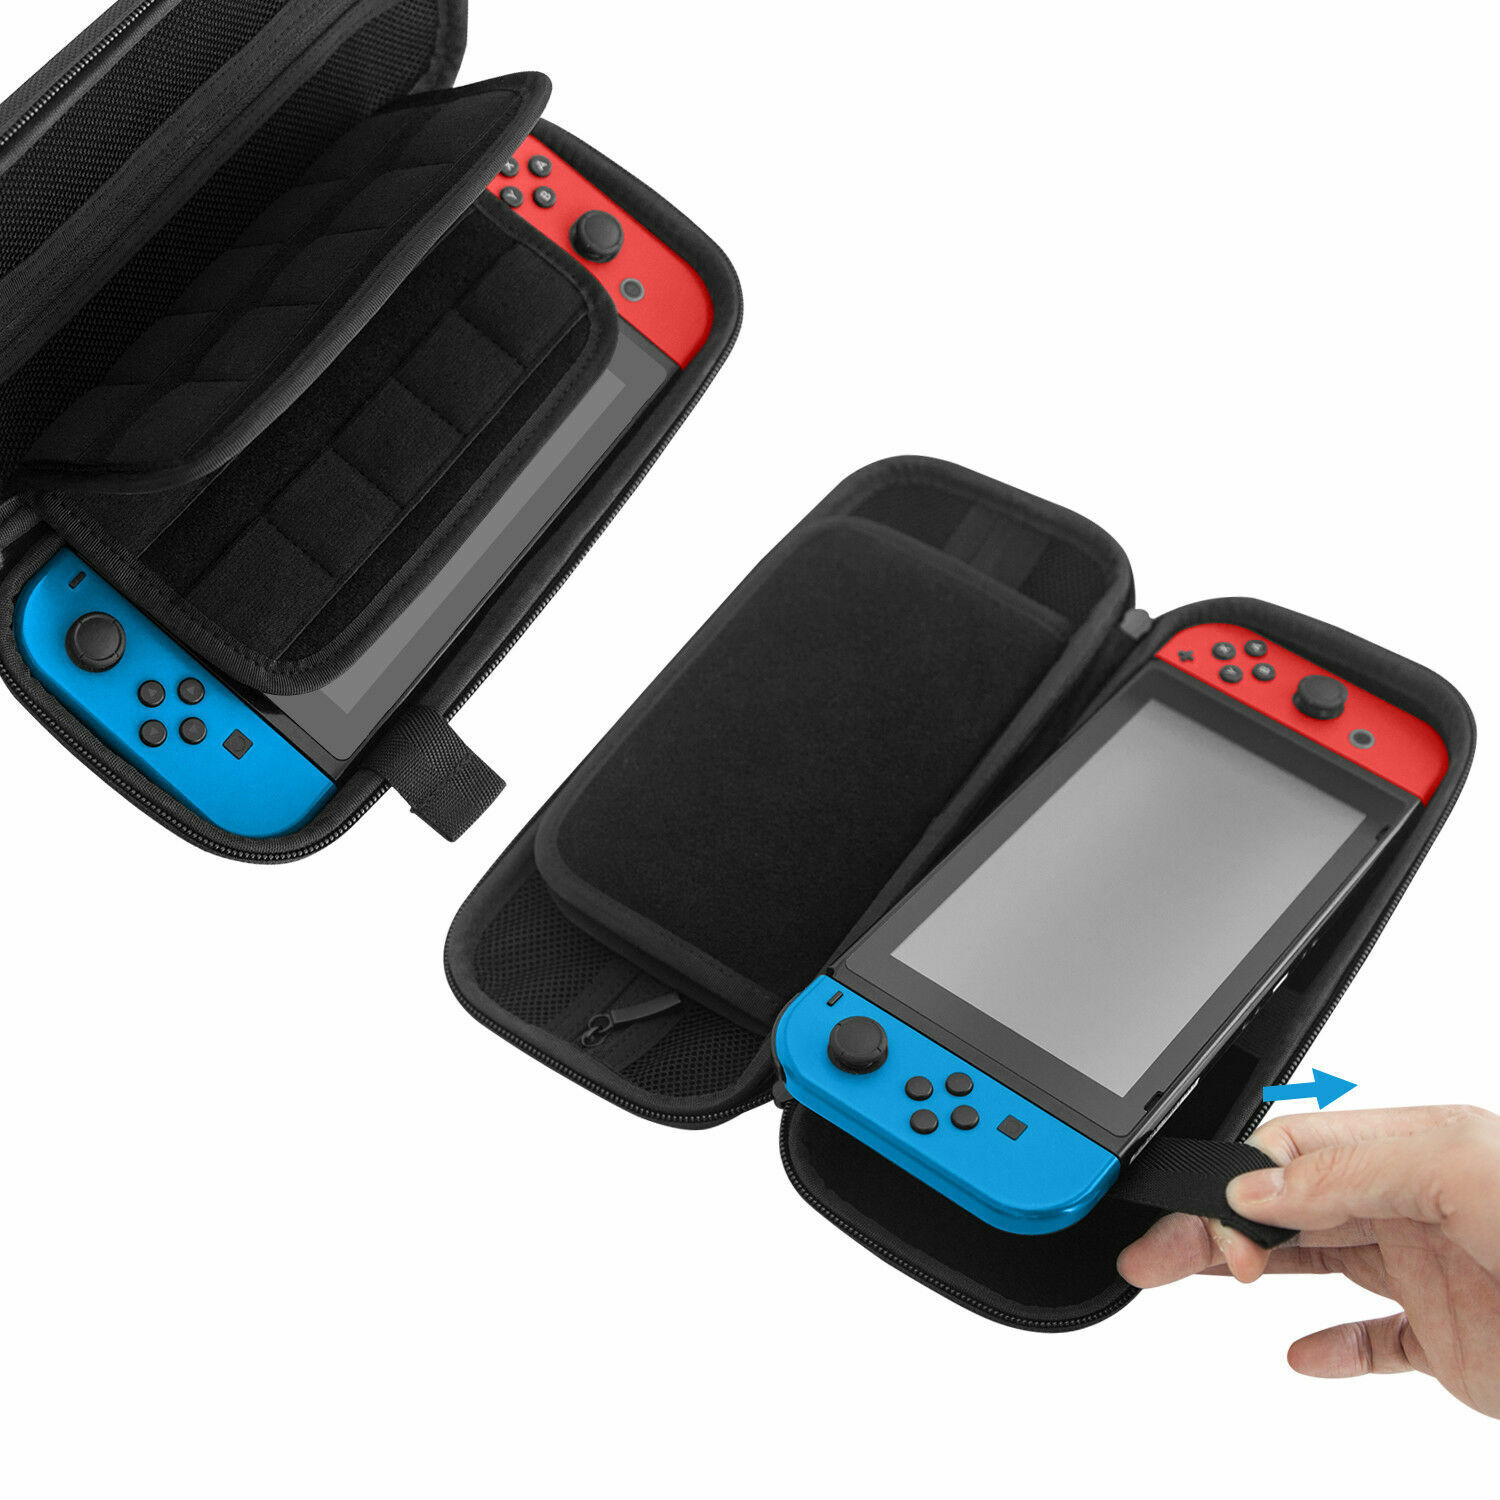 New Carrying Case for Nintendo Switch with 20 Game Cartridge Holders Only Black Bags, Skins & Travel Cases